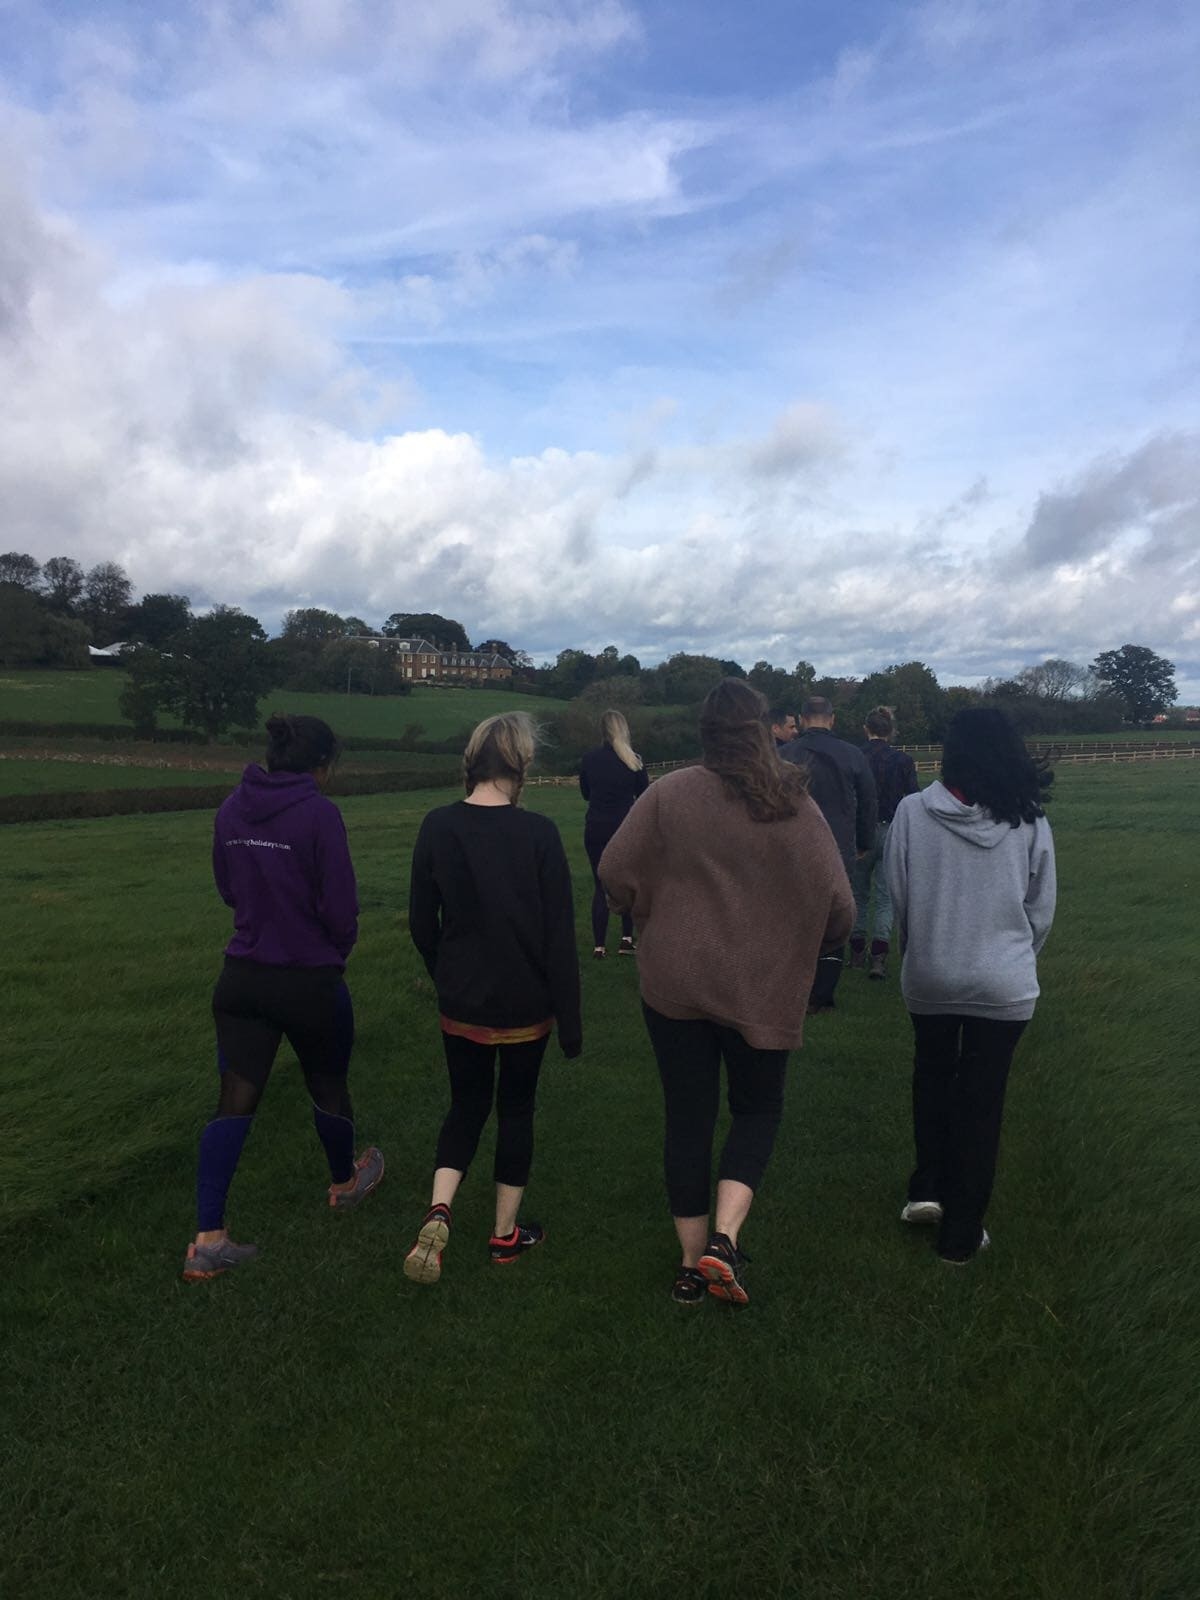 Our beautiful &Sister sister, Bex, tells all about her experiences with &Sister retreats in 2017